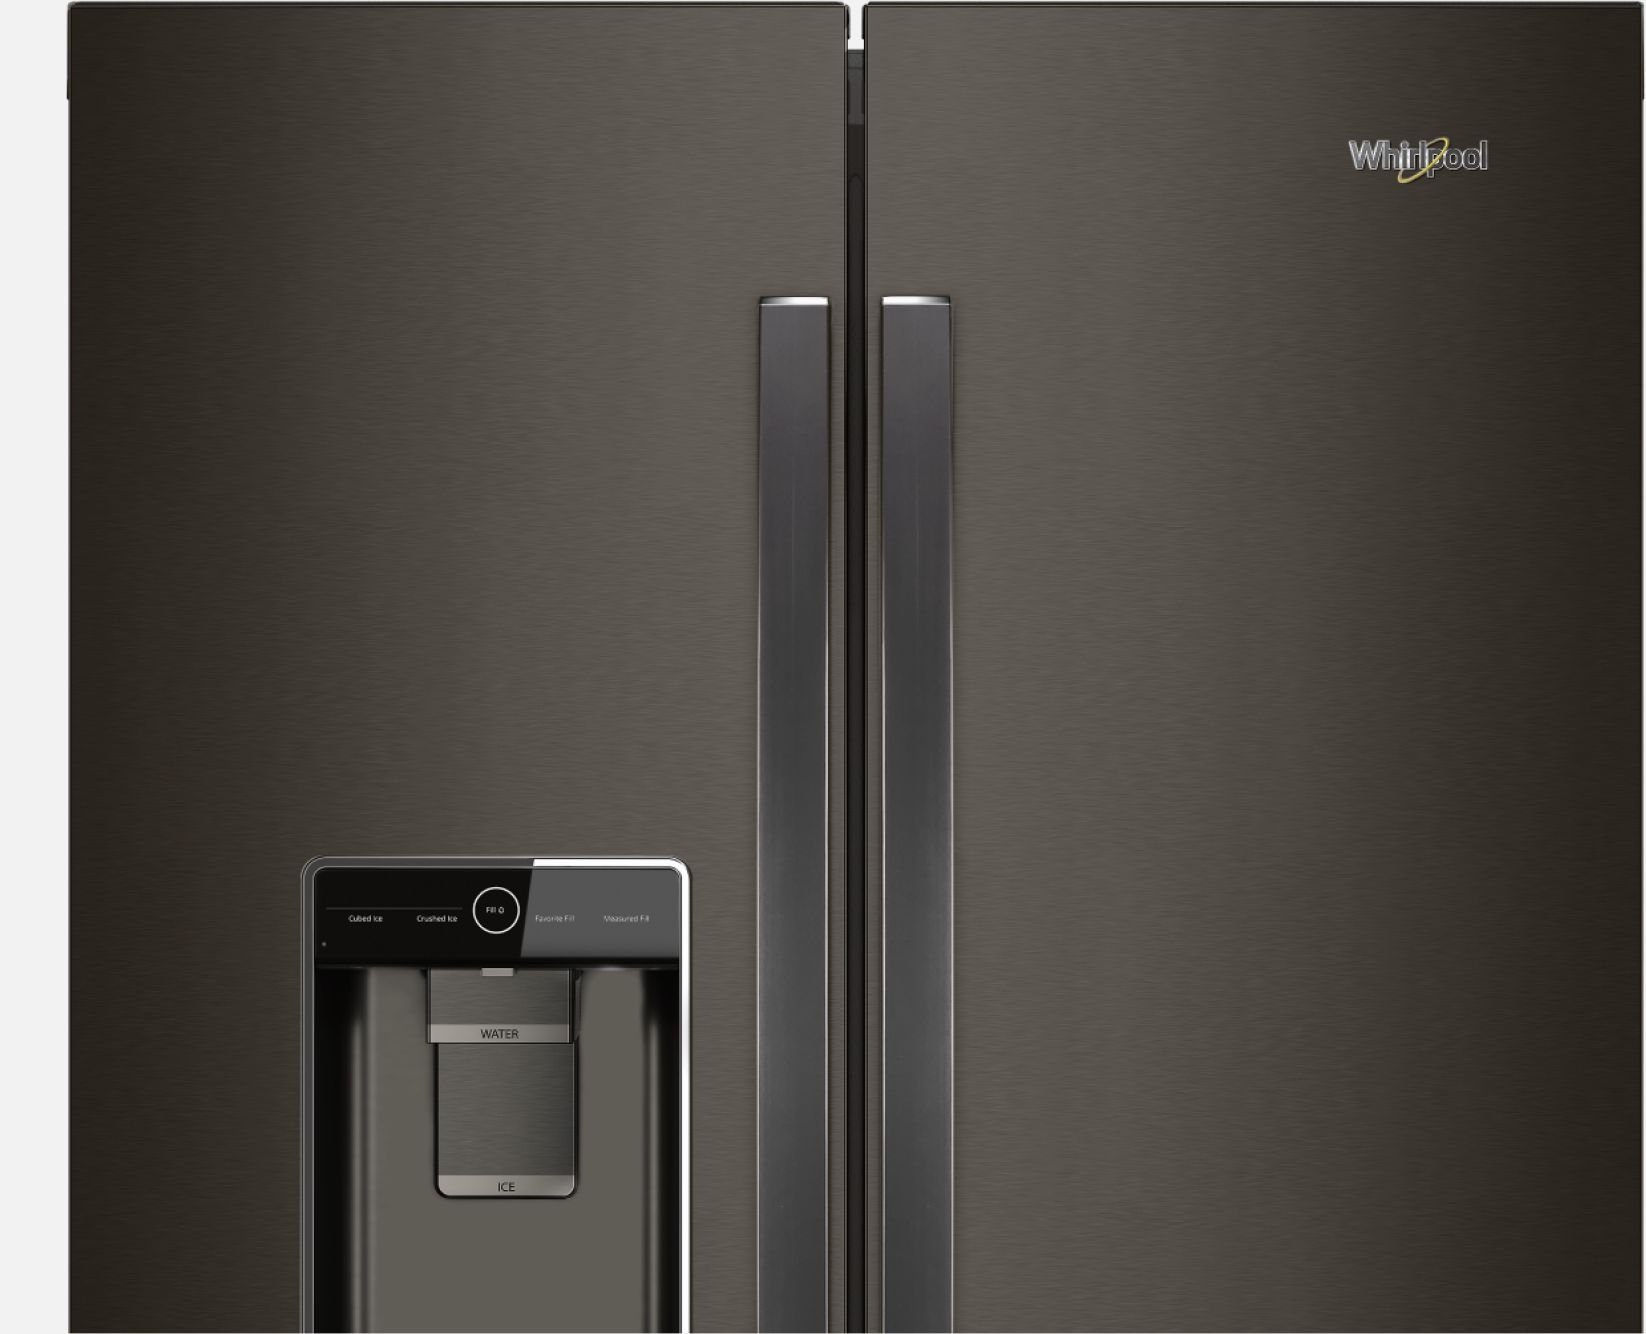 Black Stainless Steel Refrigerators And Liances From Whirlpool